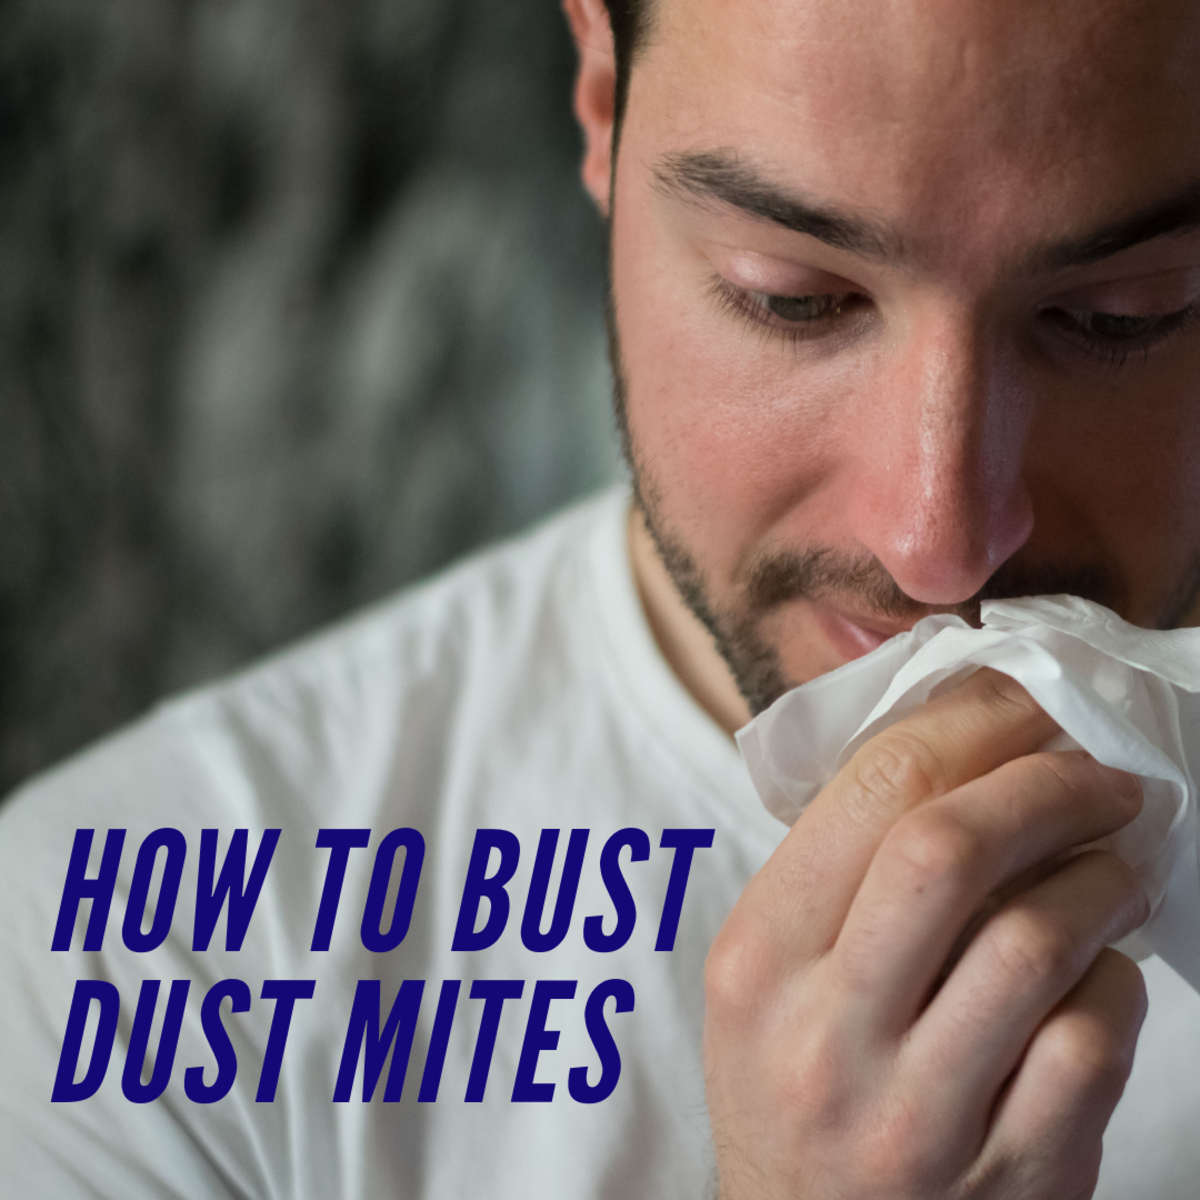 How to Bust Dust Mites